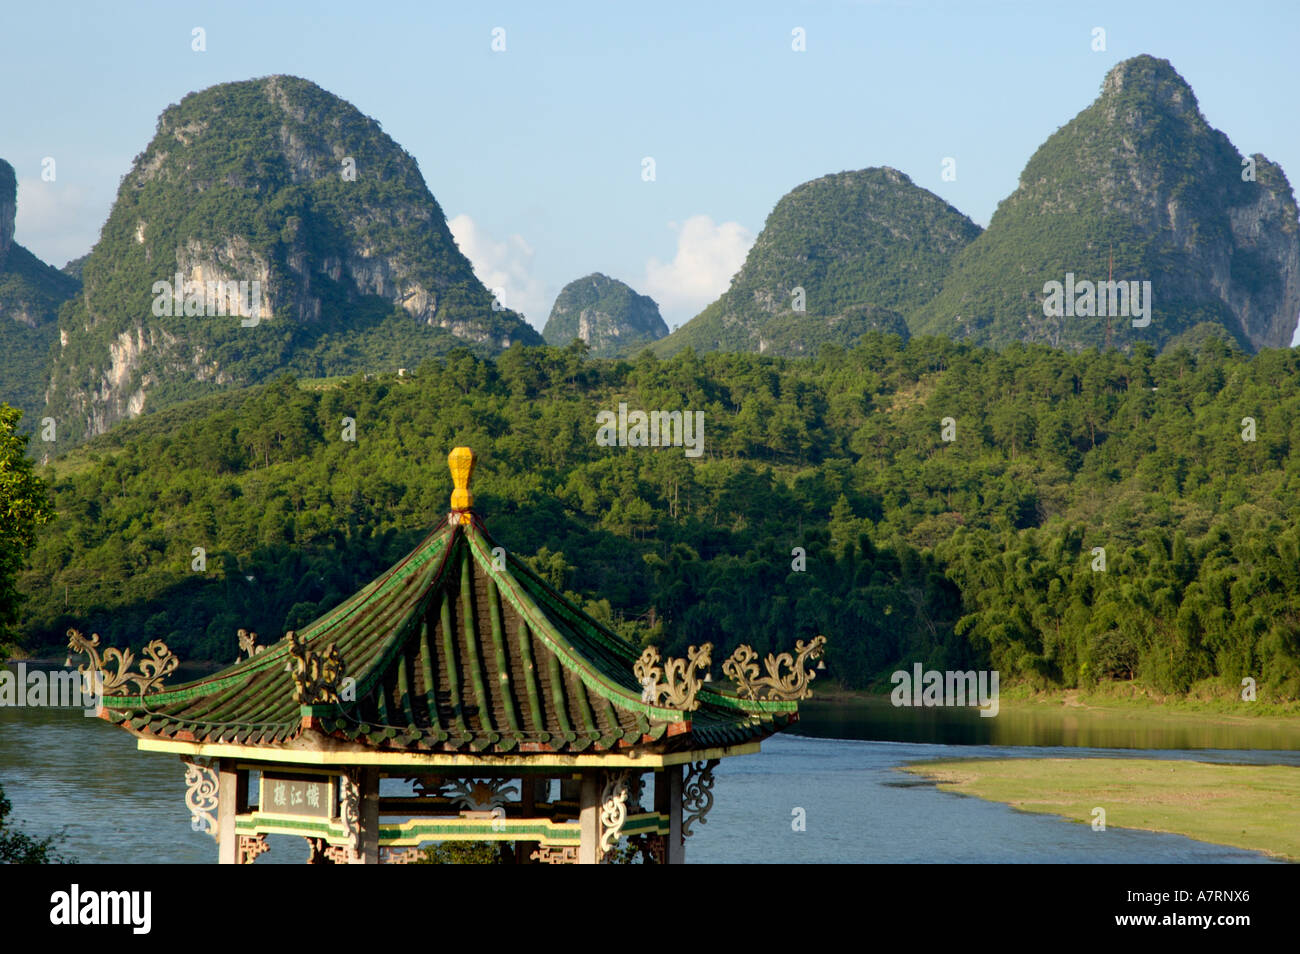 China, Guangxi, Yangshuo County - a typical Chinese pavilion on the Li River in the evening Stock Photo